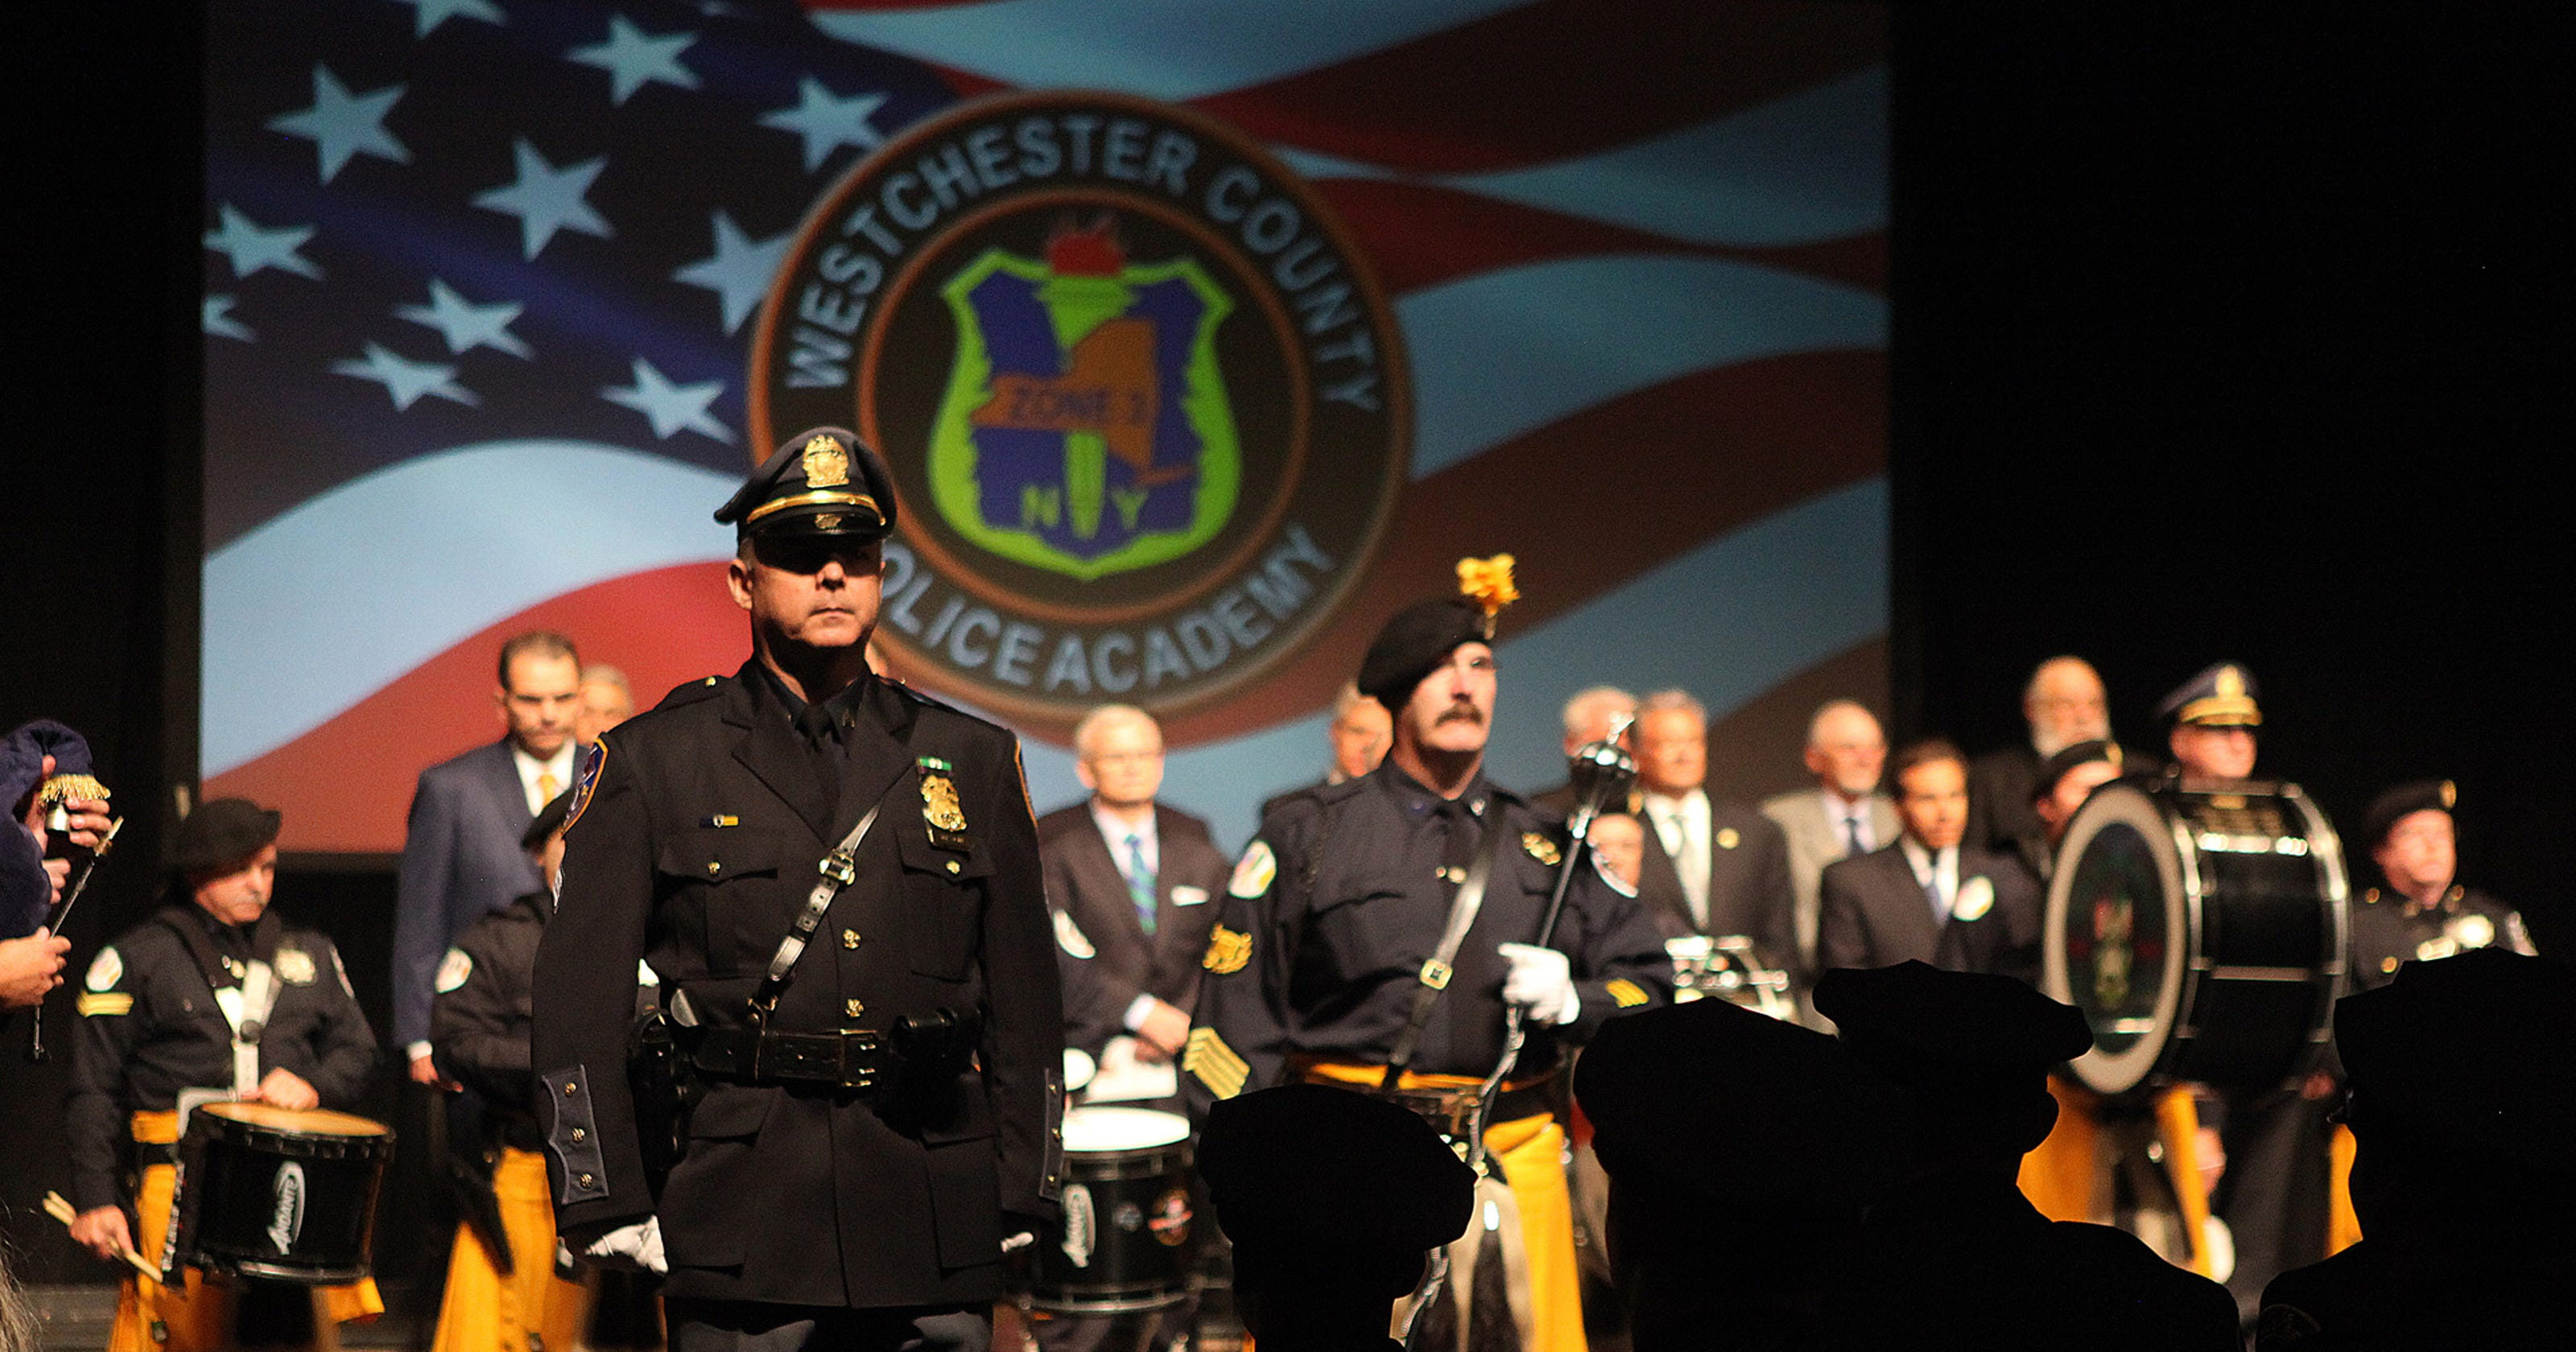 Westchester police exam: How to apply